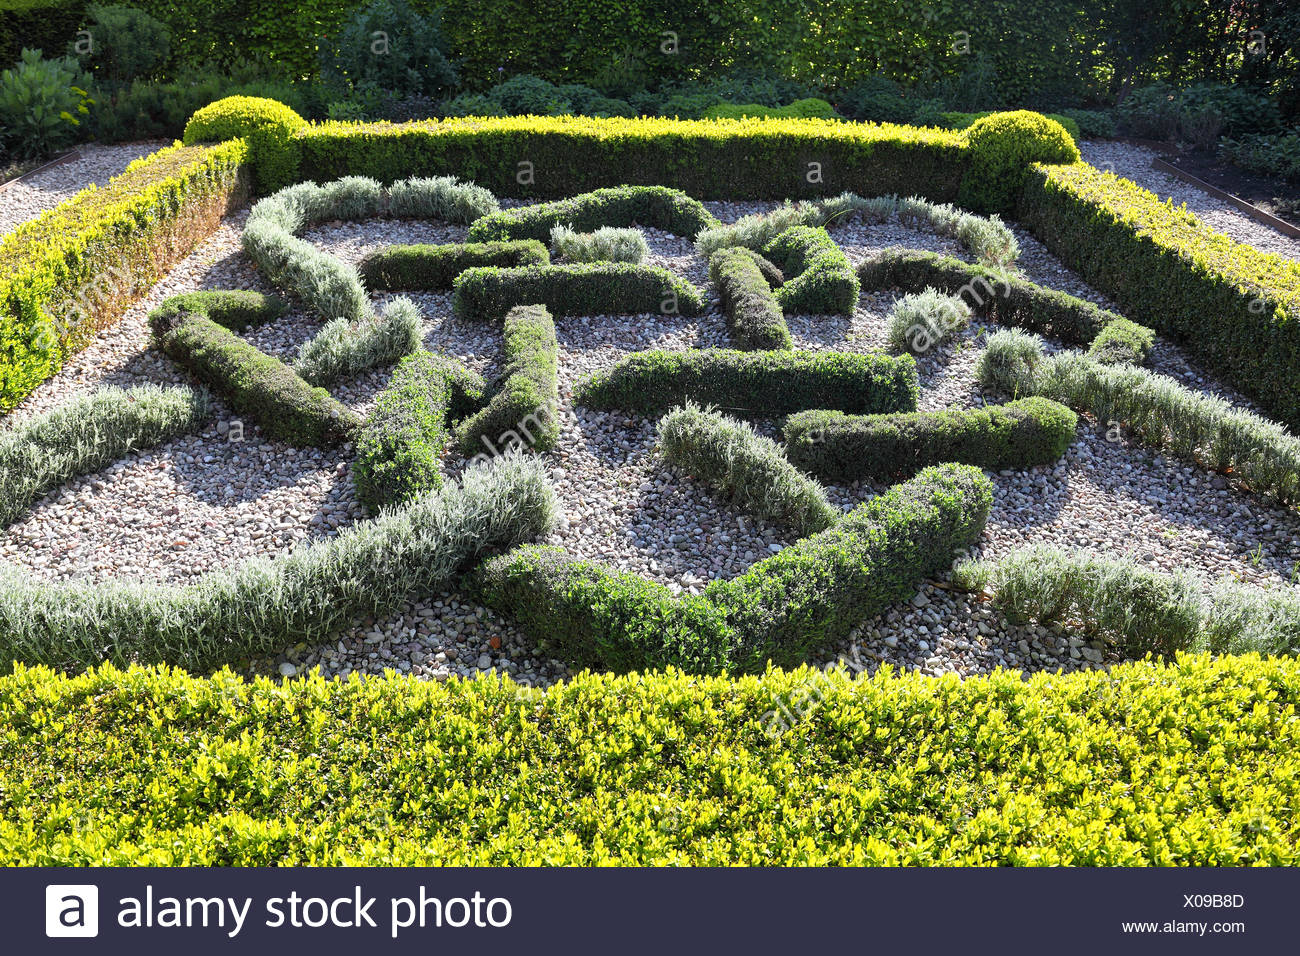 Topiary Landscaping Stock Photo 275572317 Alamy